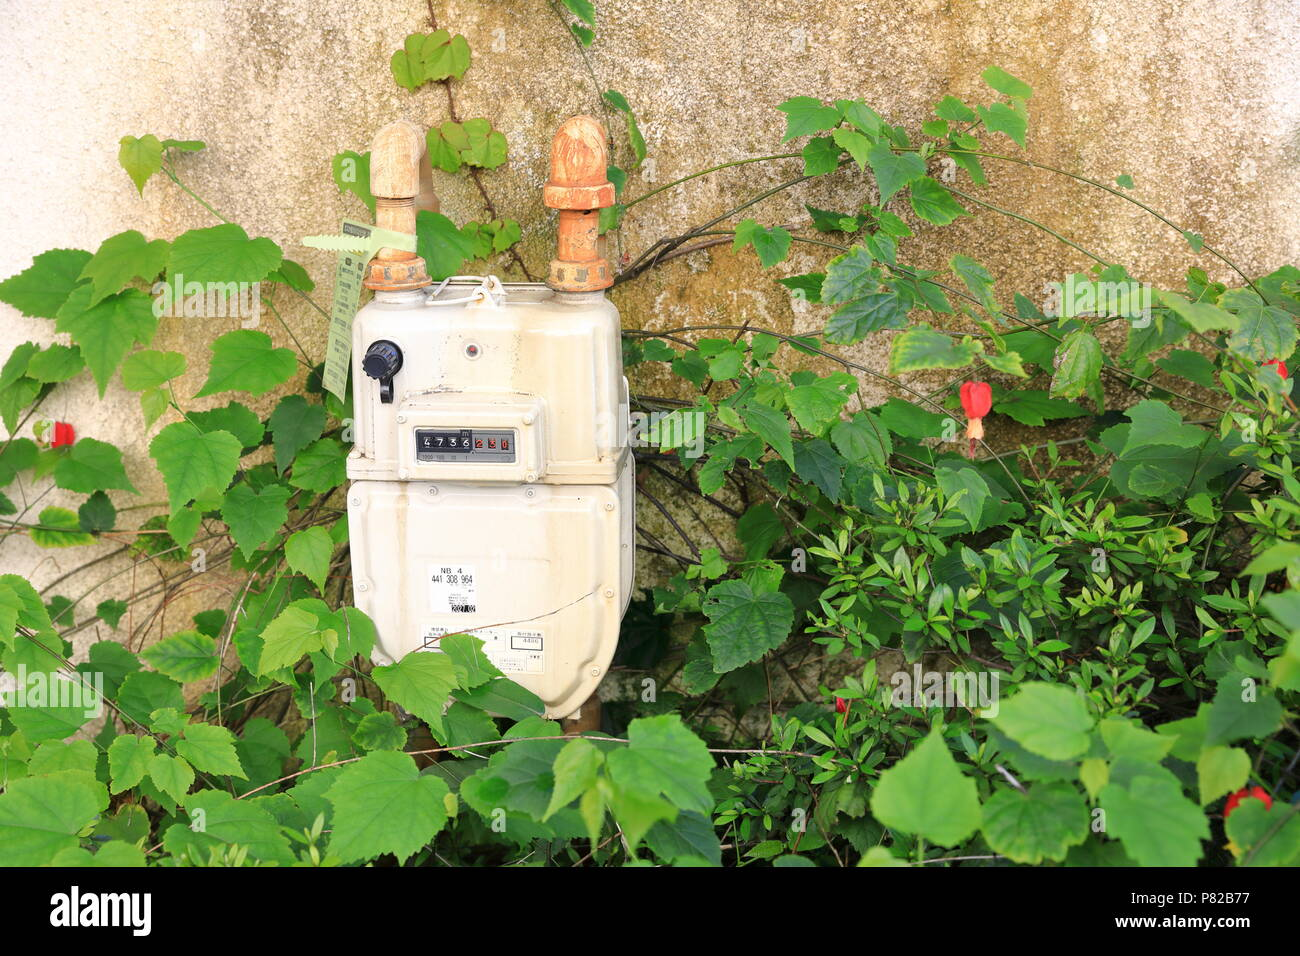 KAMAKURA JAPAN - MAY 2018 : Gas meter separate for private house, attach among beauty ivy, Meter Reading in Cubic meter. - Stock Image